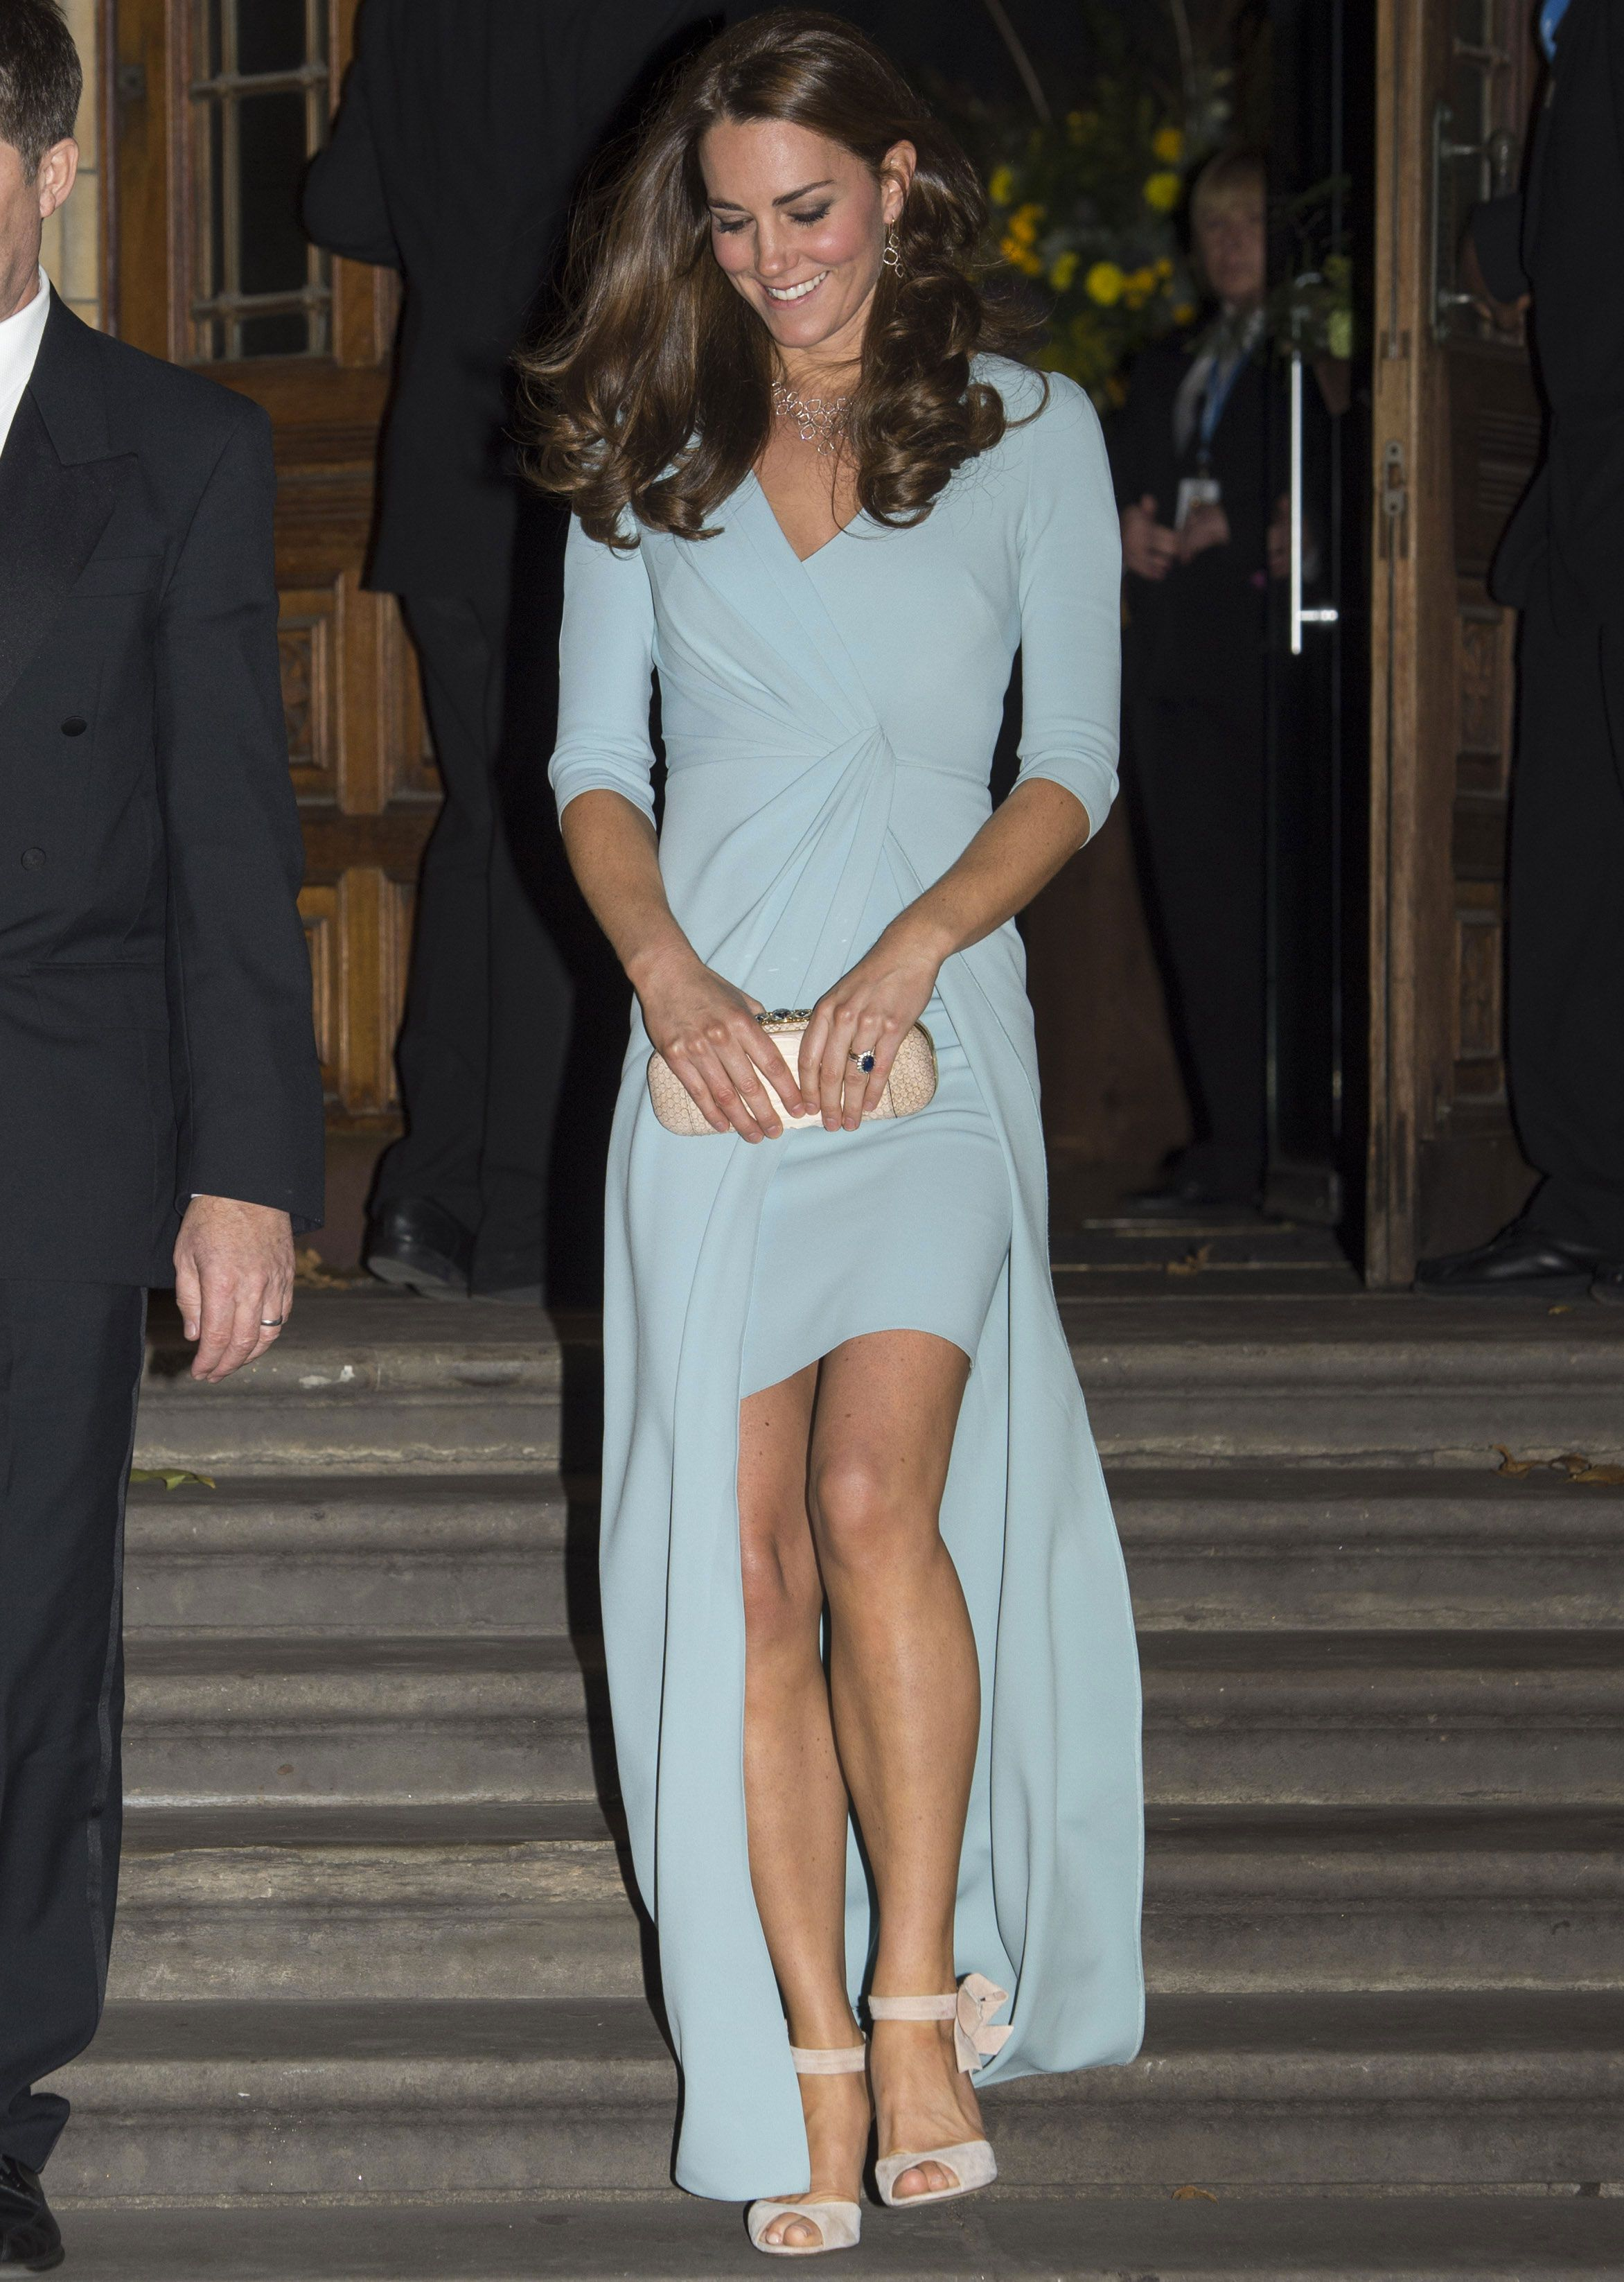 Kate Middleton looks wonderful in a very nice dress, just for a change